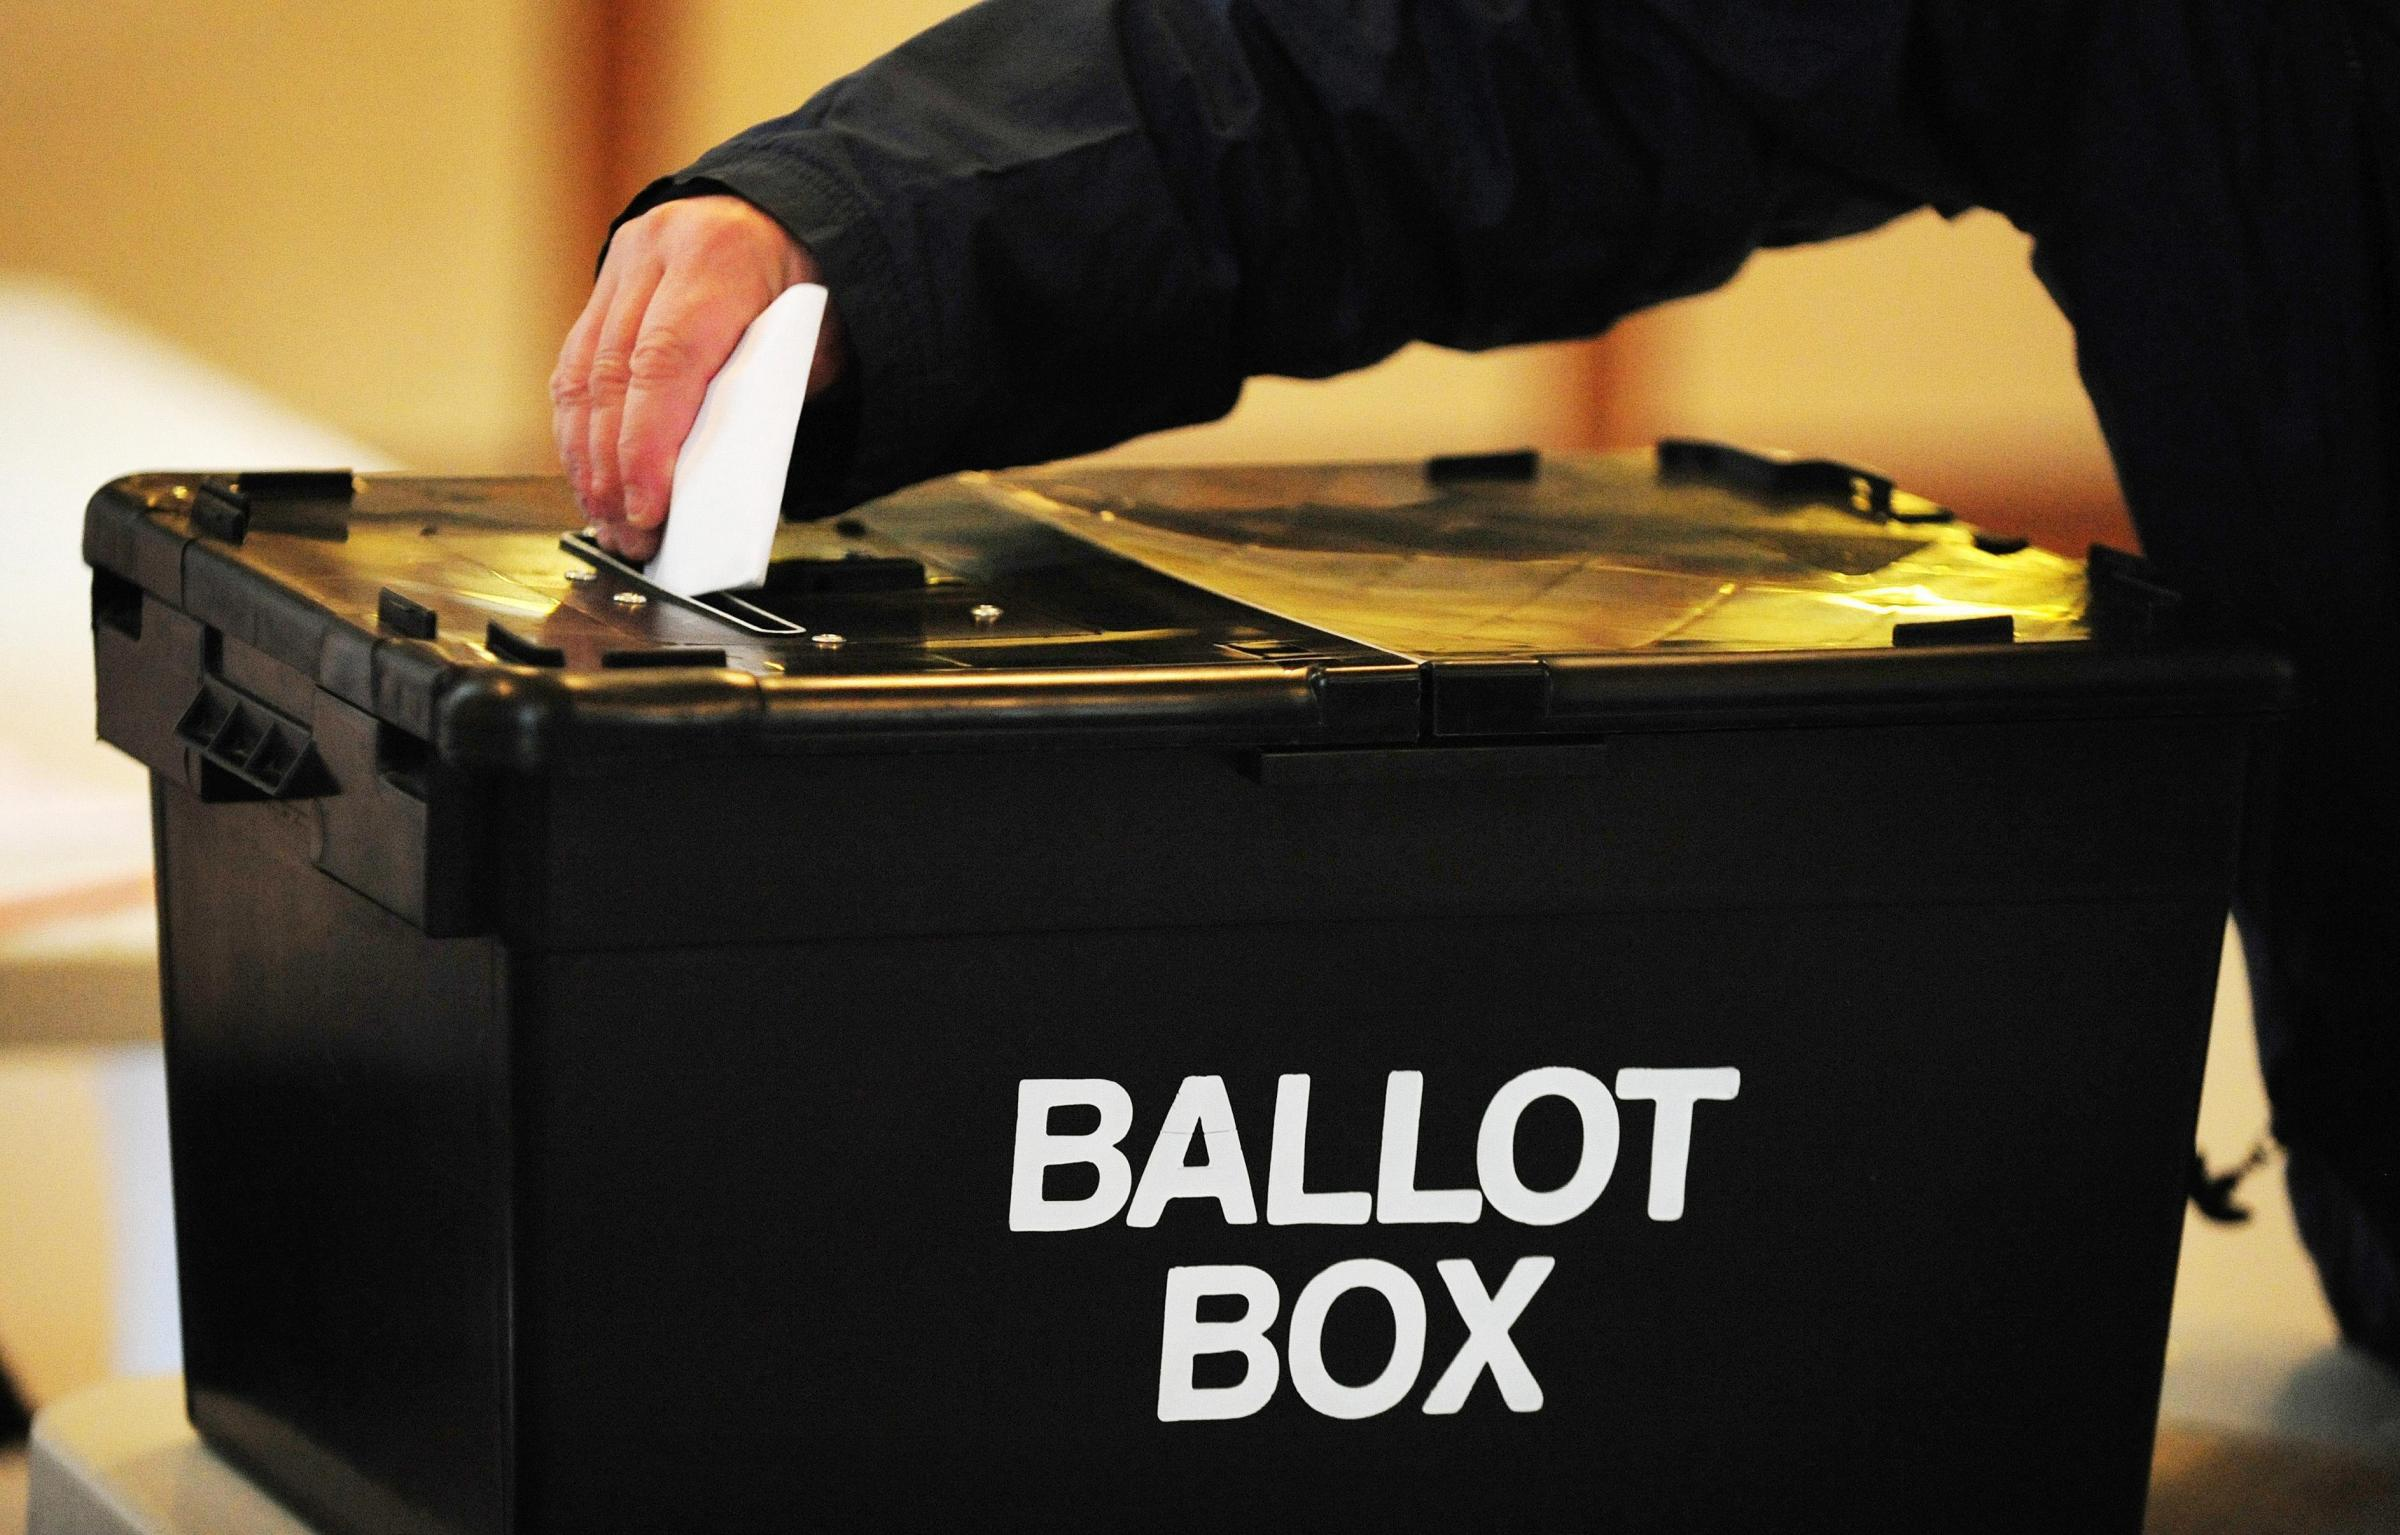 Polling stations open for local and European elections - will you be voting?